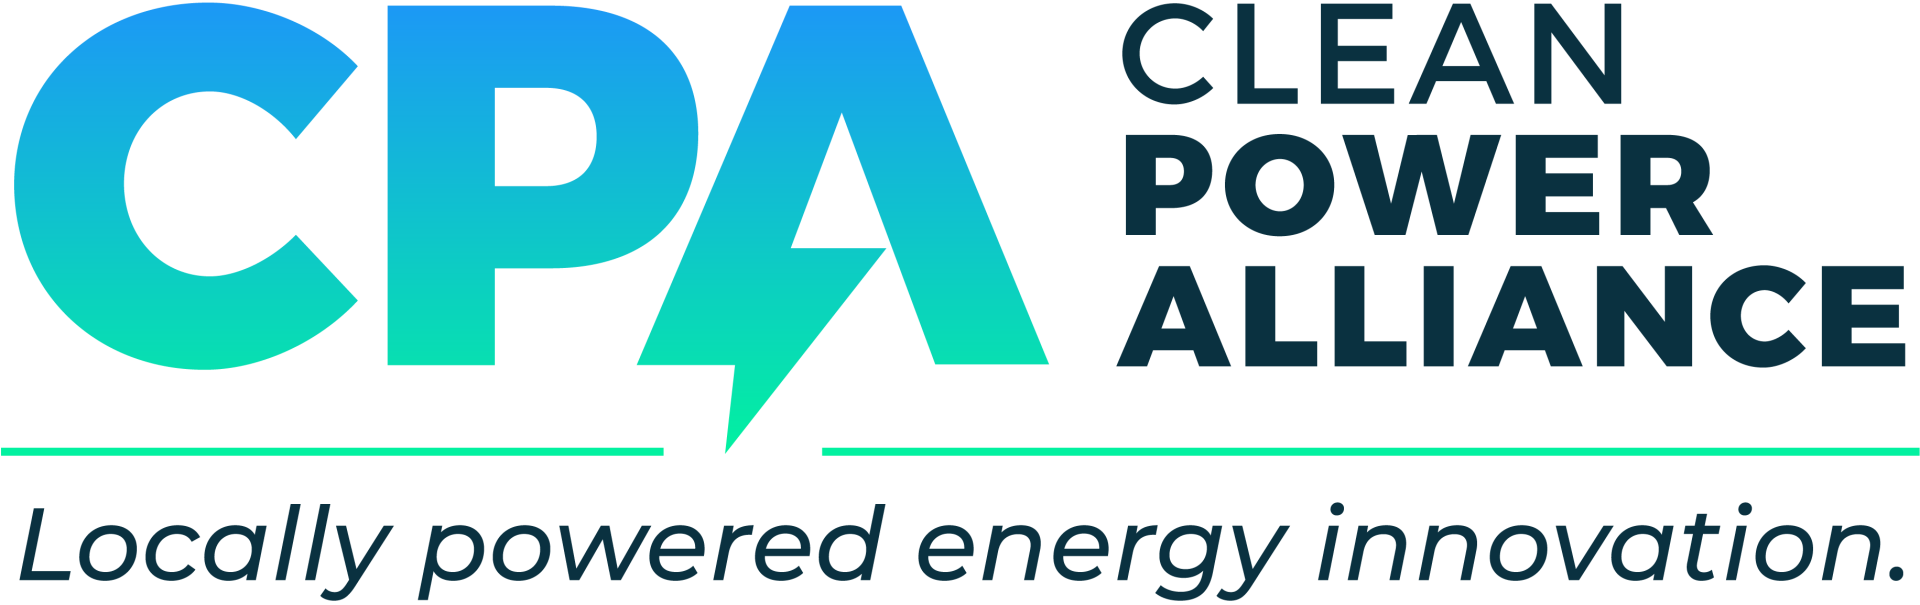 Clean Power Alliance Logo - Locally powered energy innovation